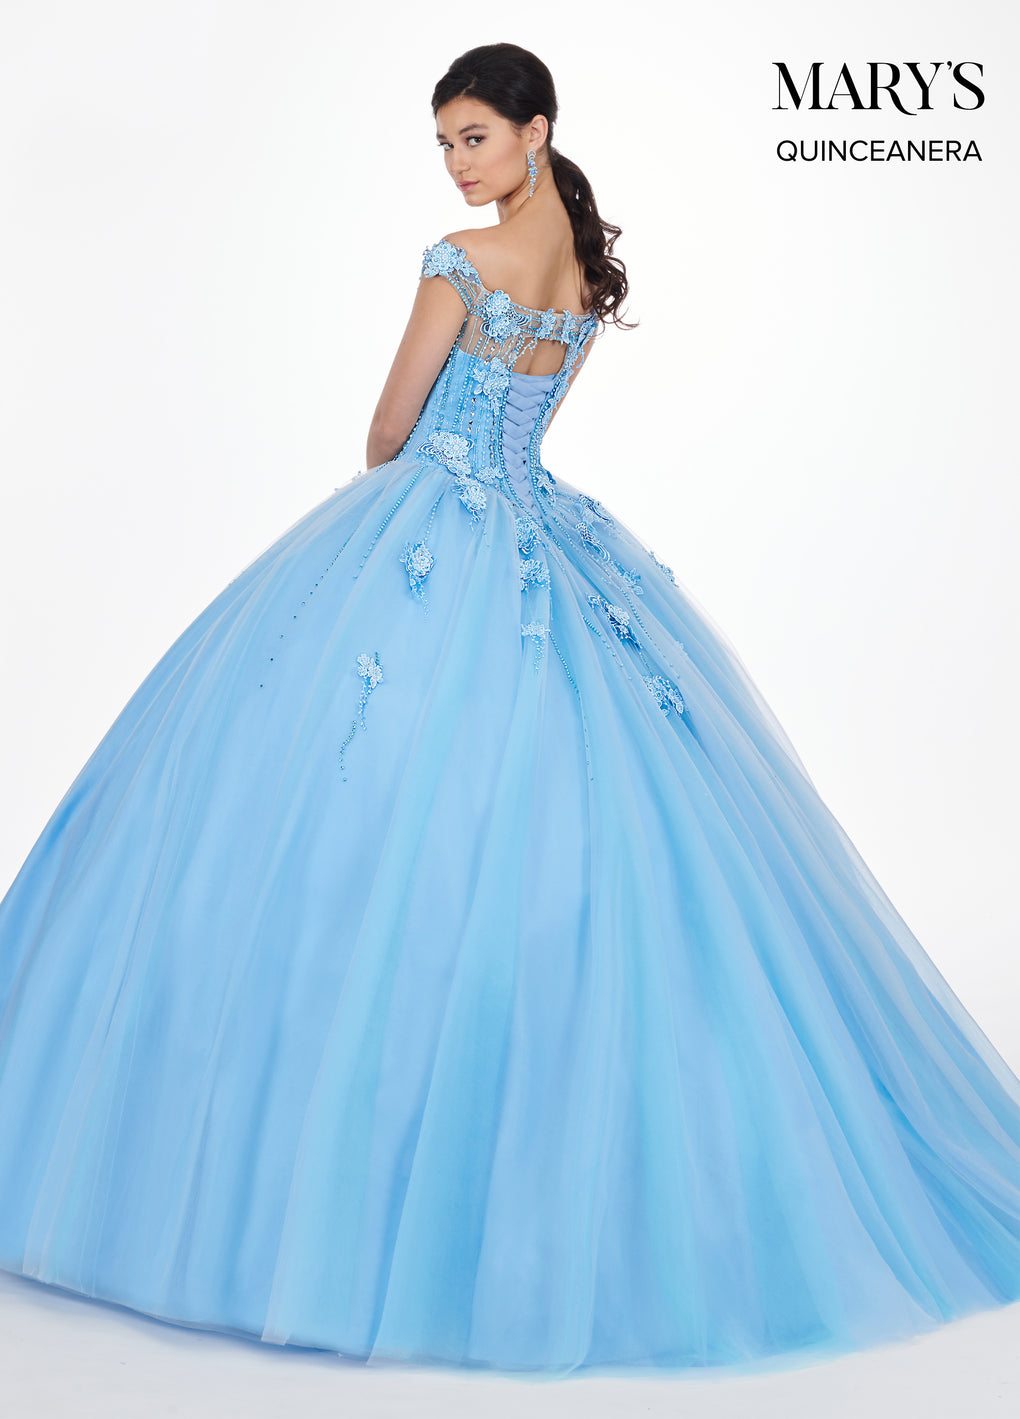 Marys Quinceanera Dresses in Glacier Blue, Lipstick, or White Color